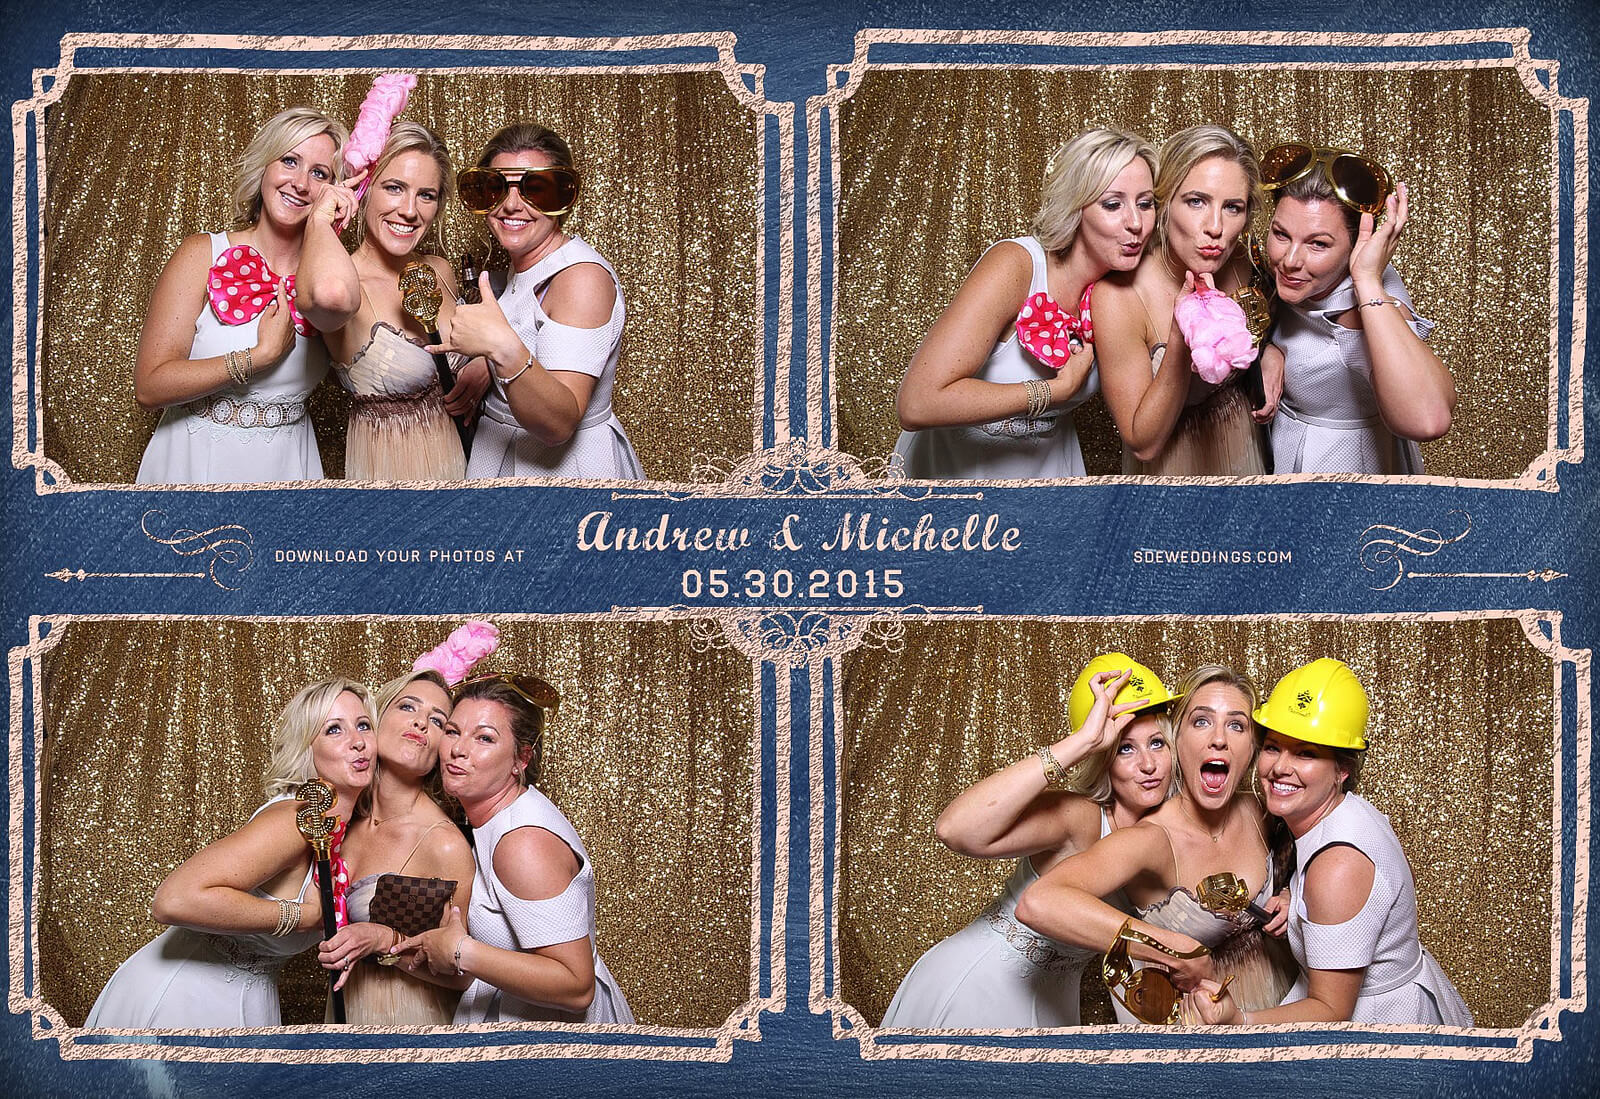 Toronto Police Wedding Photobooth at Peel Regional Police Association Banquet Hall 8